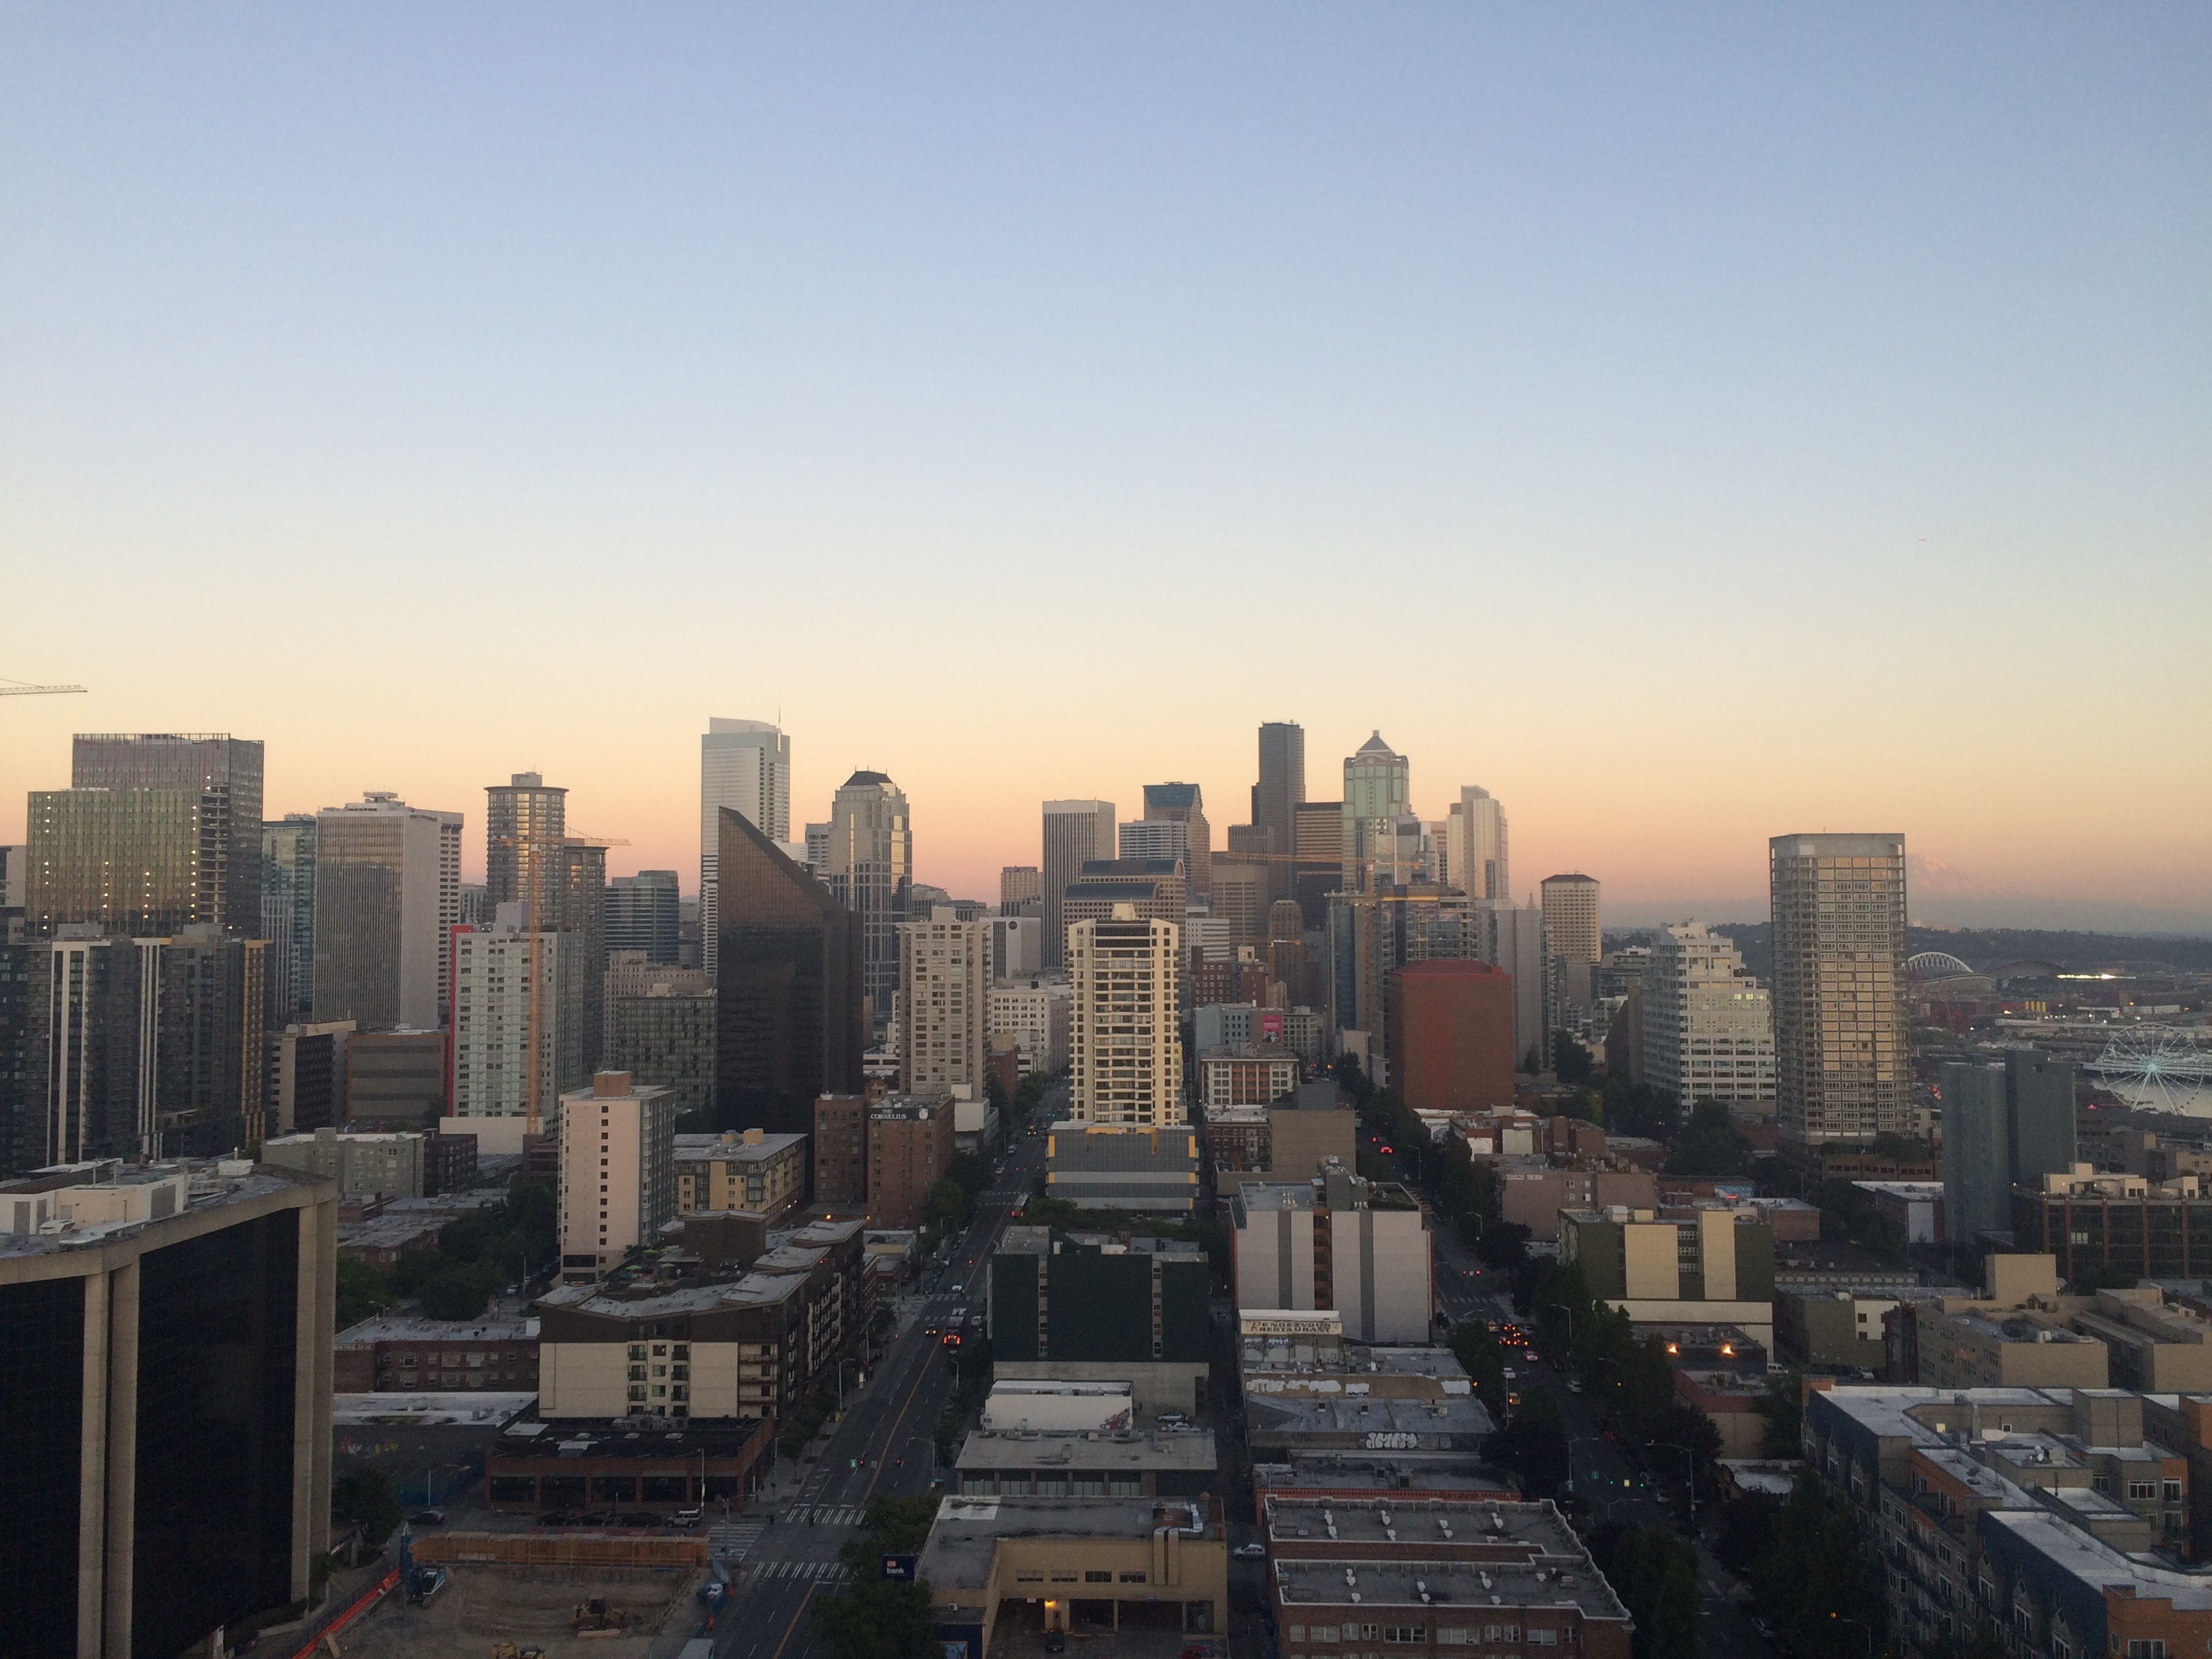 The skyline of downtown Seattle during sunset